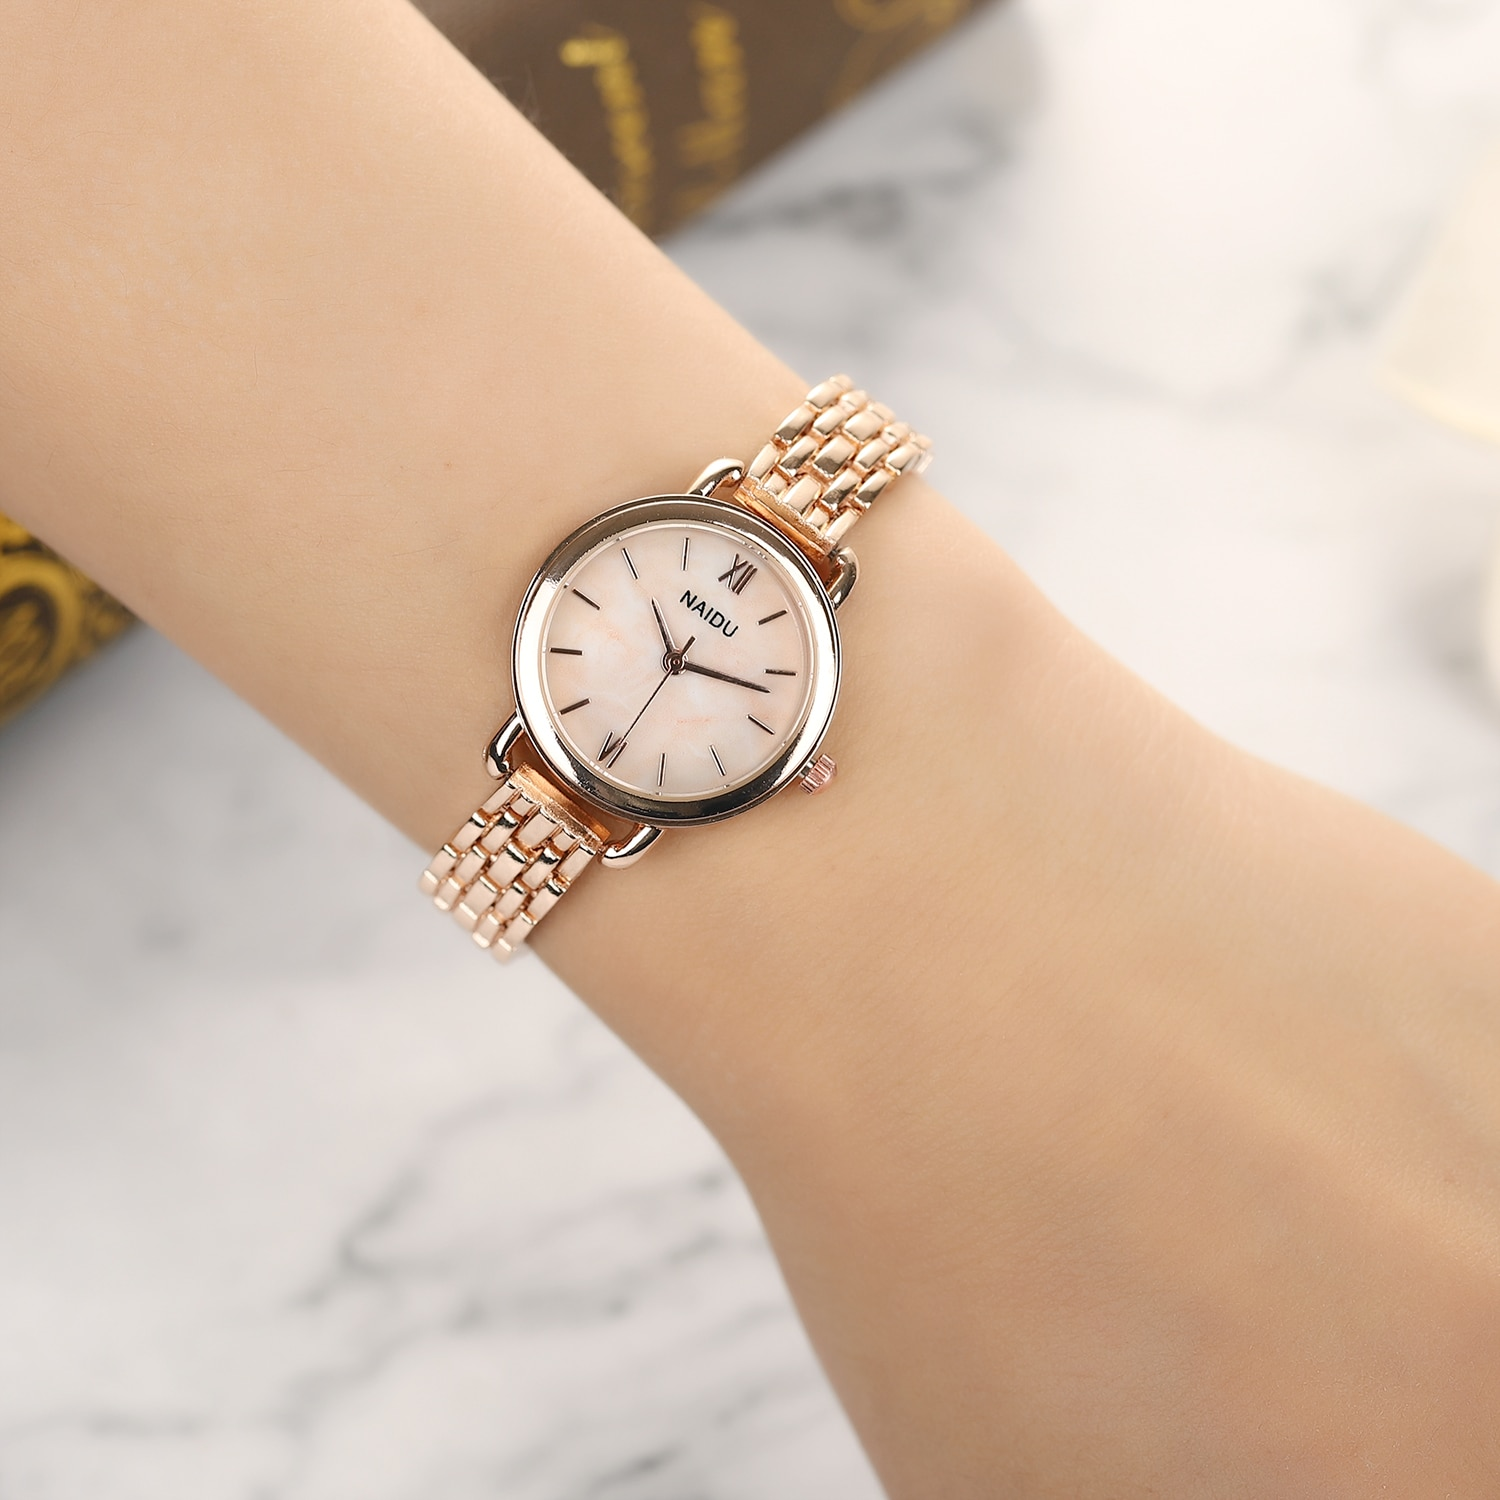 часы женские 2021 Fashion Stars Women Watch Dotted With Scale Luxury Women's Casual montre femme